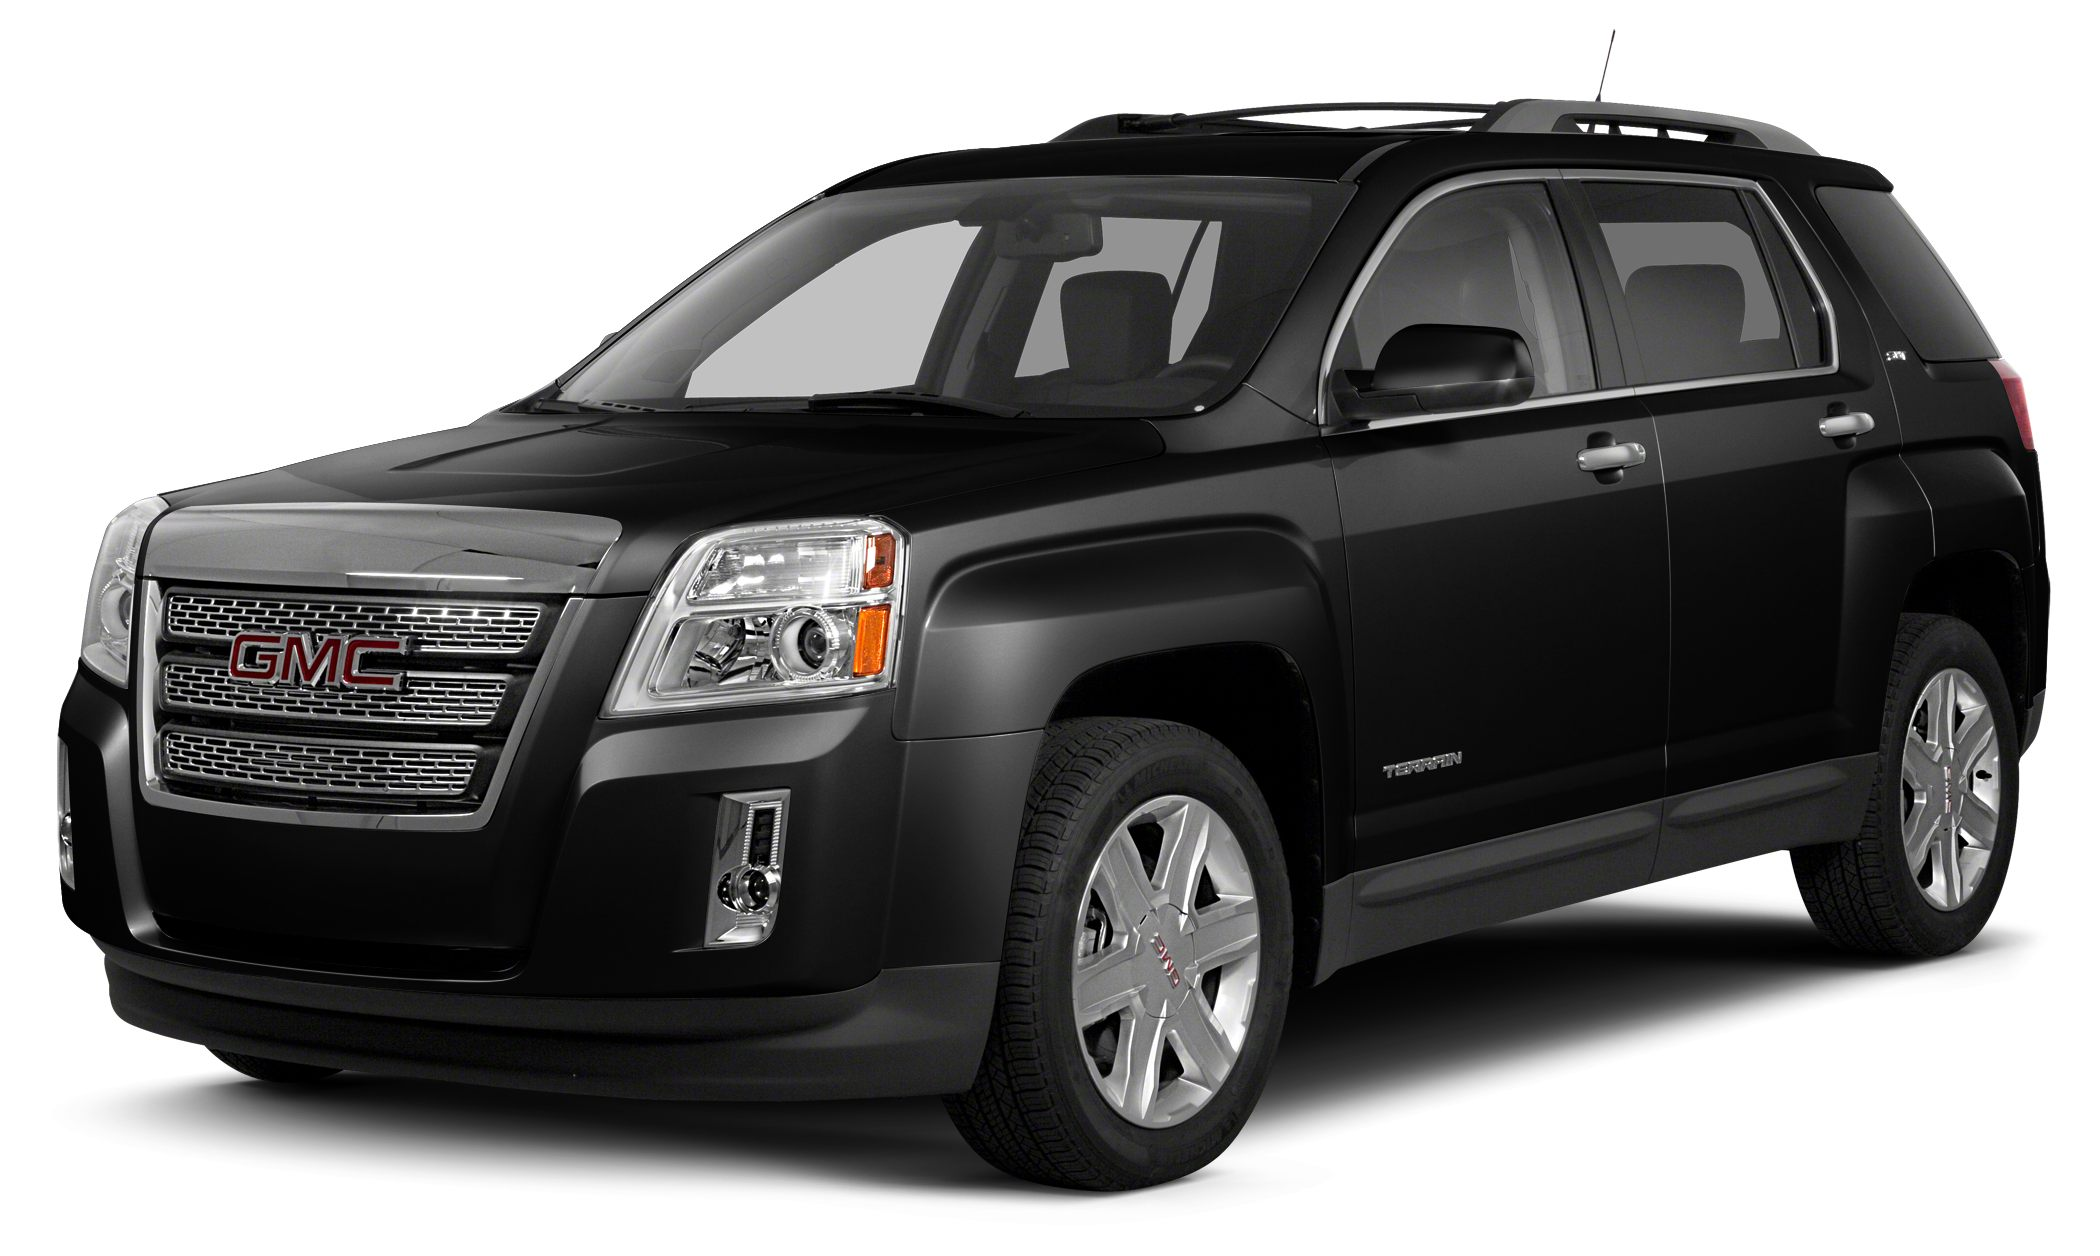 2013 GMC Terrain SLT-2 FUEL EFFICIENT 24 MPG Hwy17 MPG City Moonroof Heated Leather Seats Nav